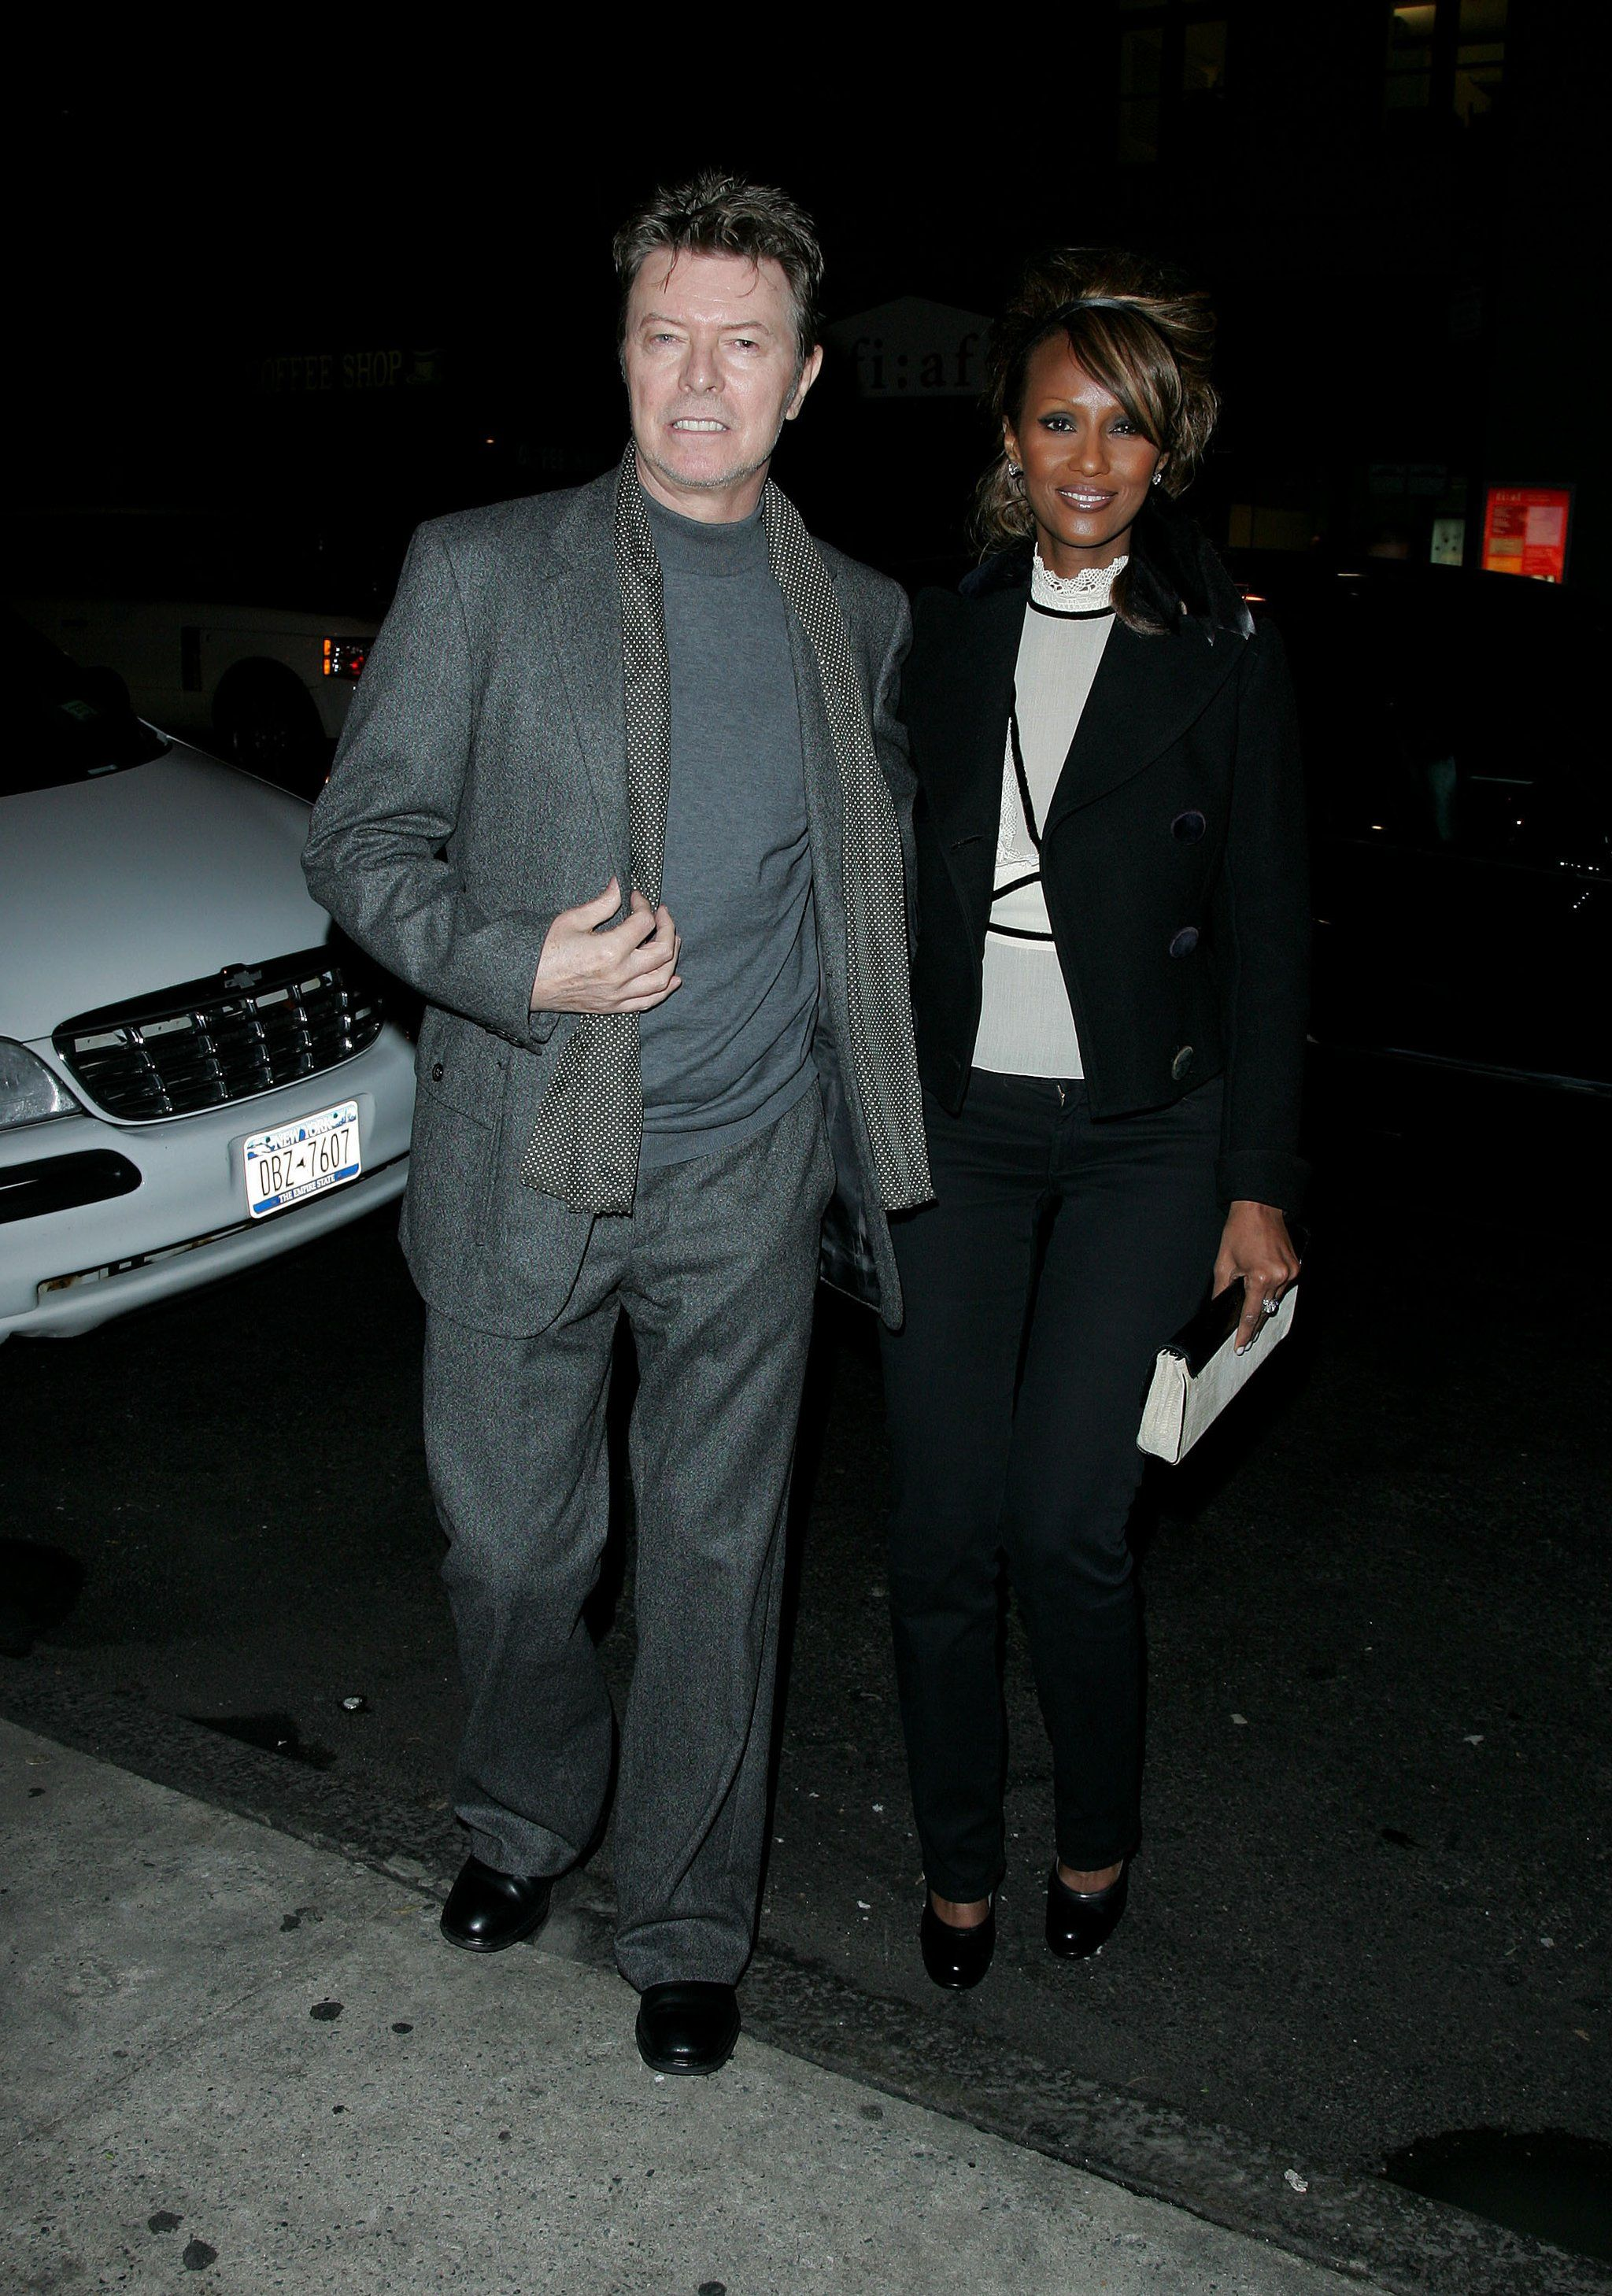 2006-Mr and Mrs Jones(Bowie)